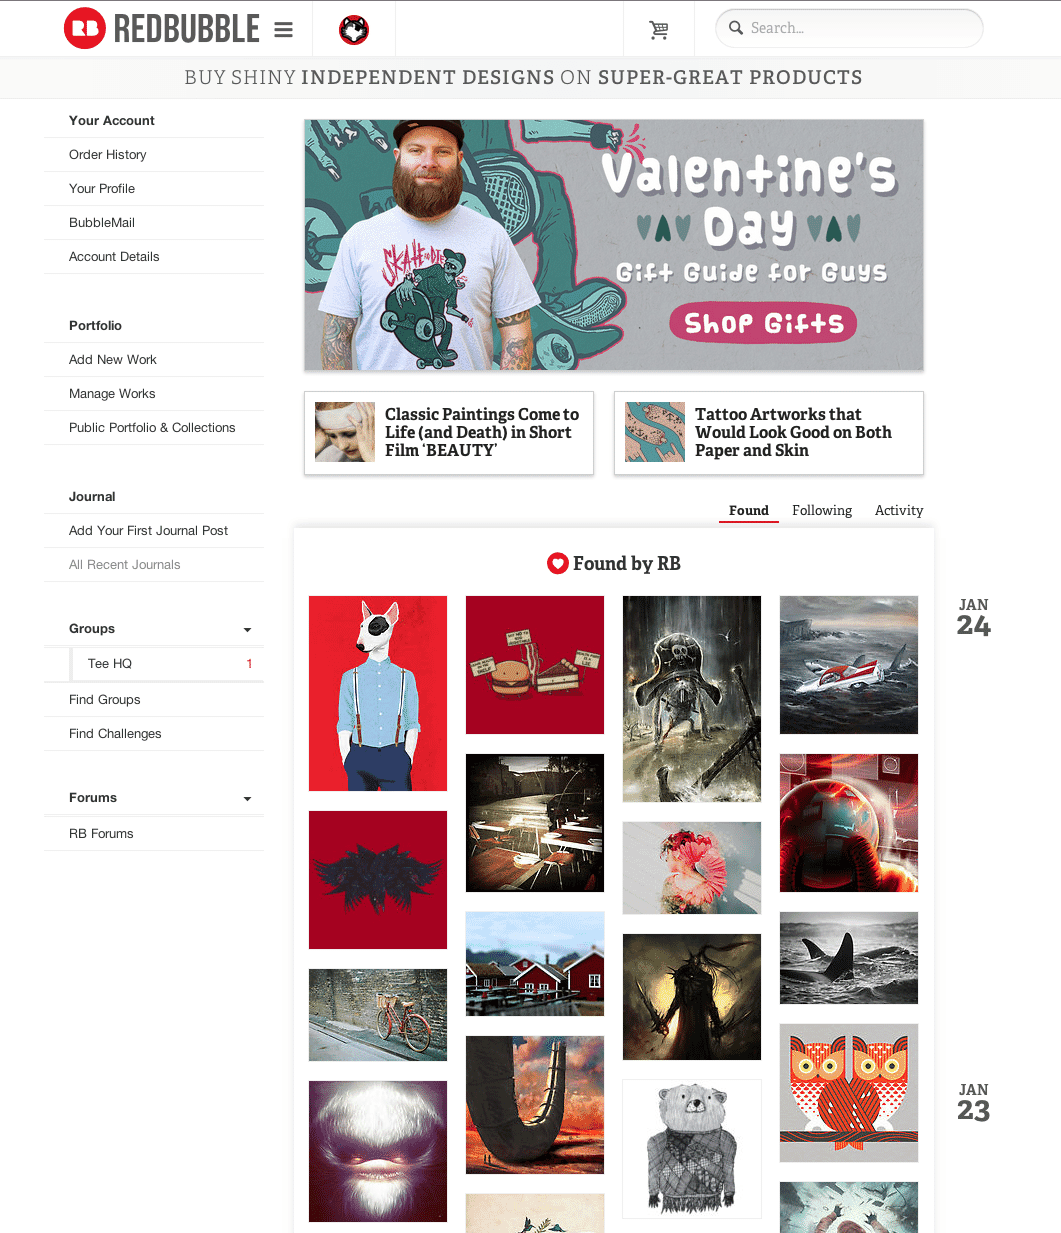 Crowberus illustration featured on the redbubble.com home page